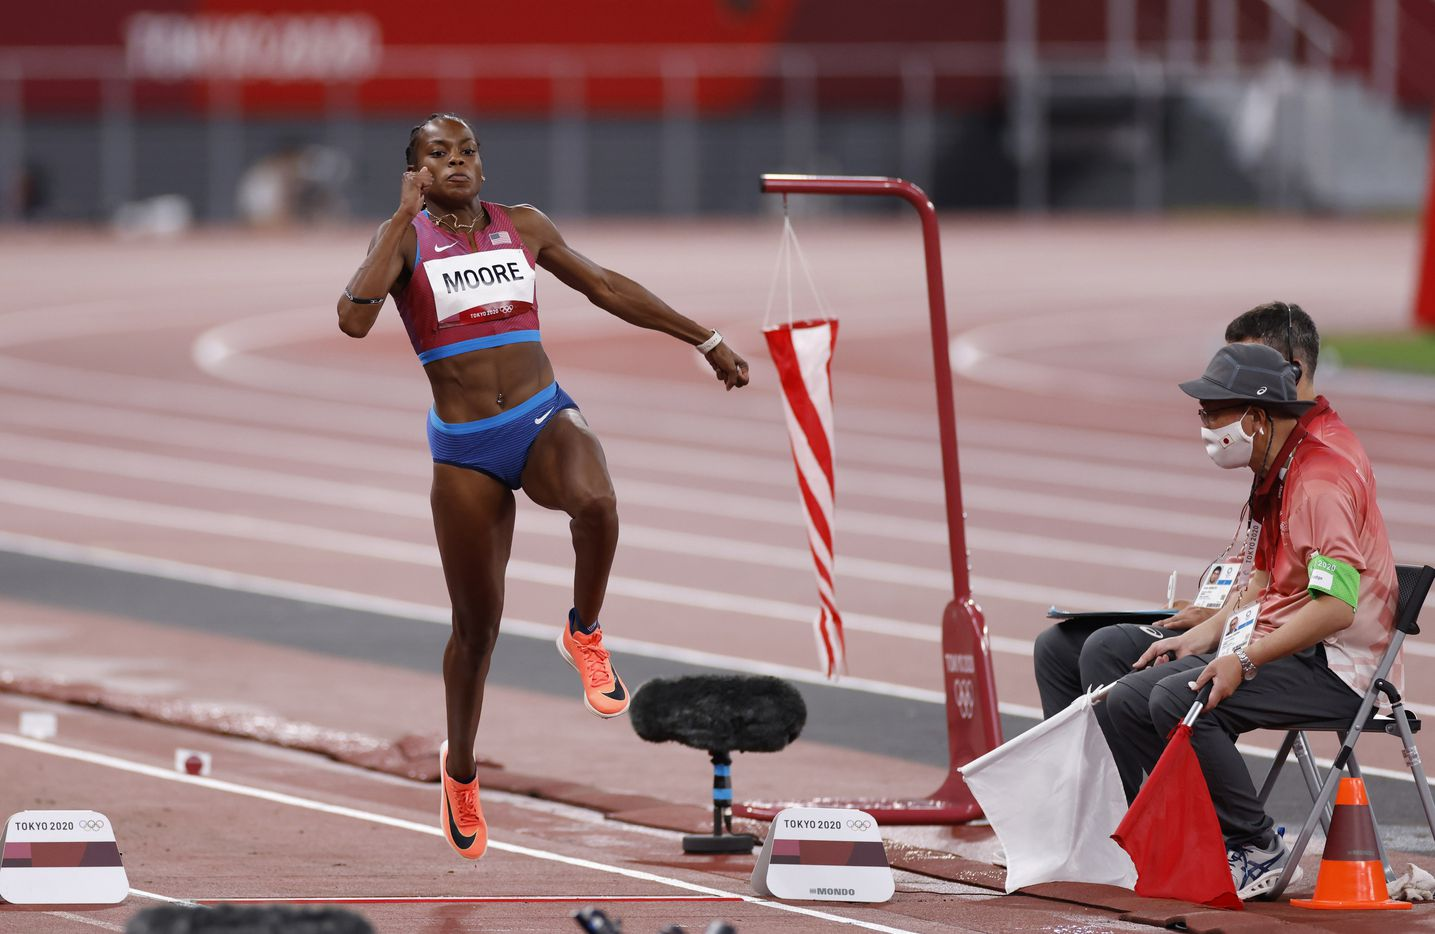 USA's Jasmine Moore competes in the women's triple jump qualification round during the postponed 2020 Tokyo Olympics at Olympic Stadium, on Friday, July 30, 2021, in Tokyo, Japan. Moore did not advance to the next round. (Vernon Bryant/The Dallas Morning News)